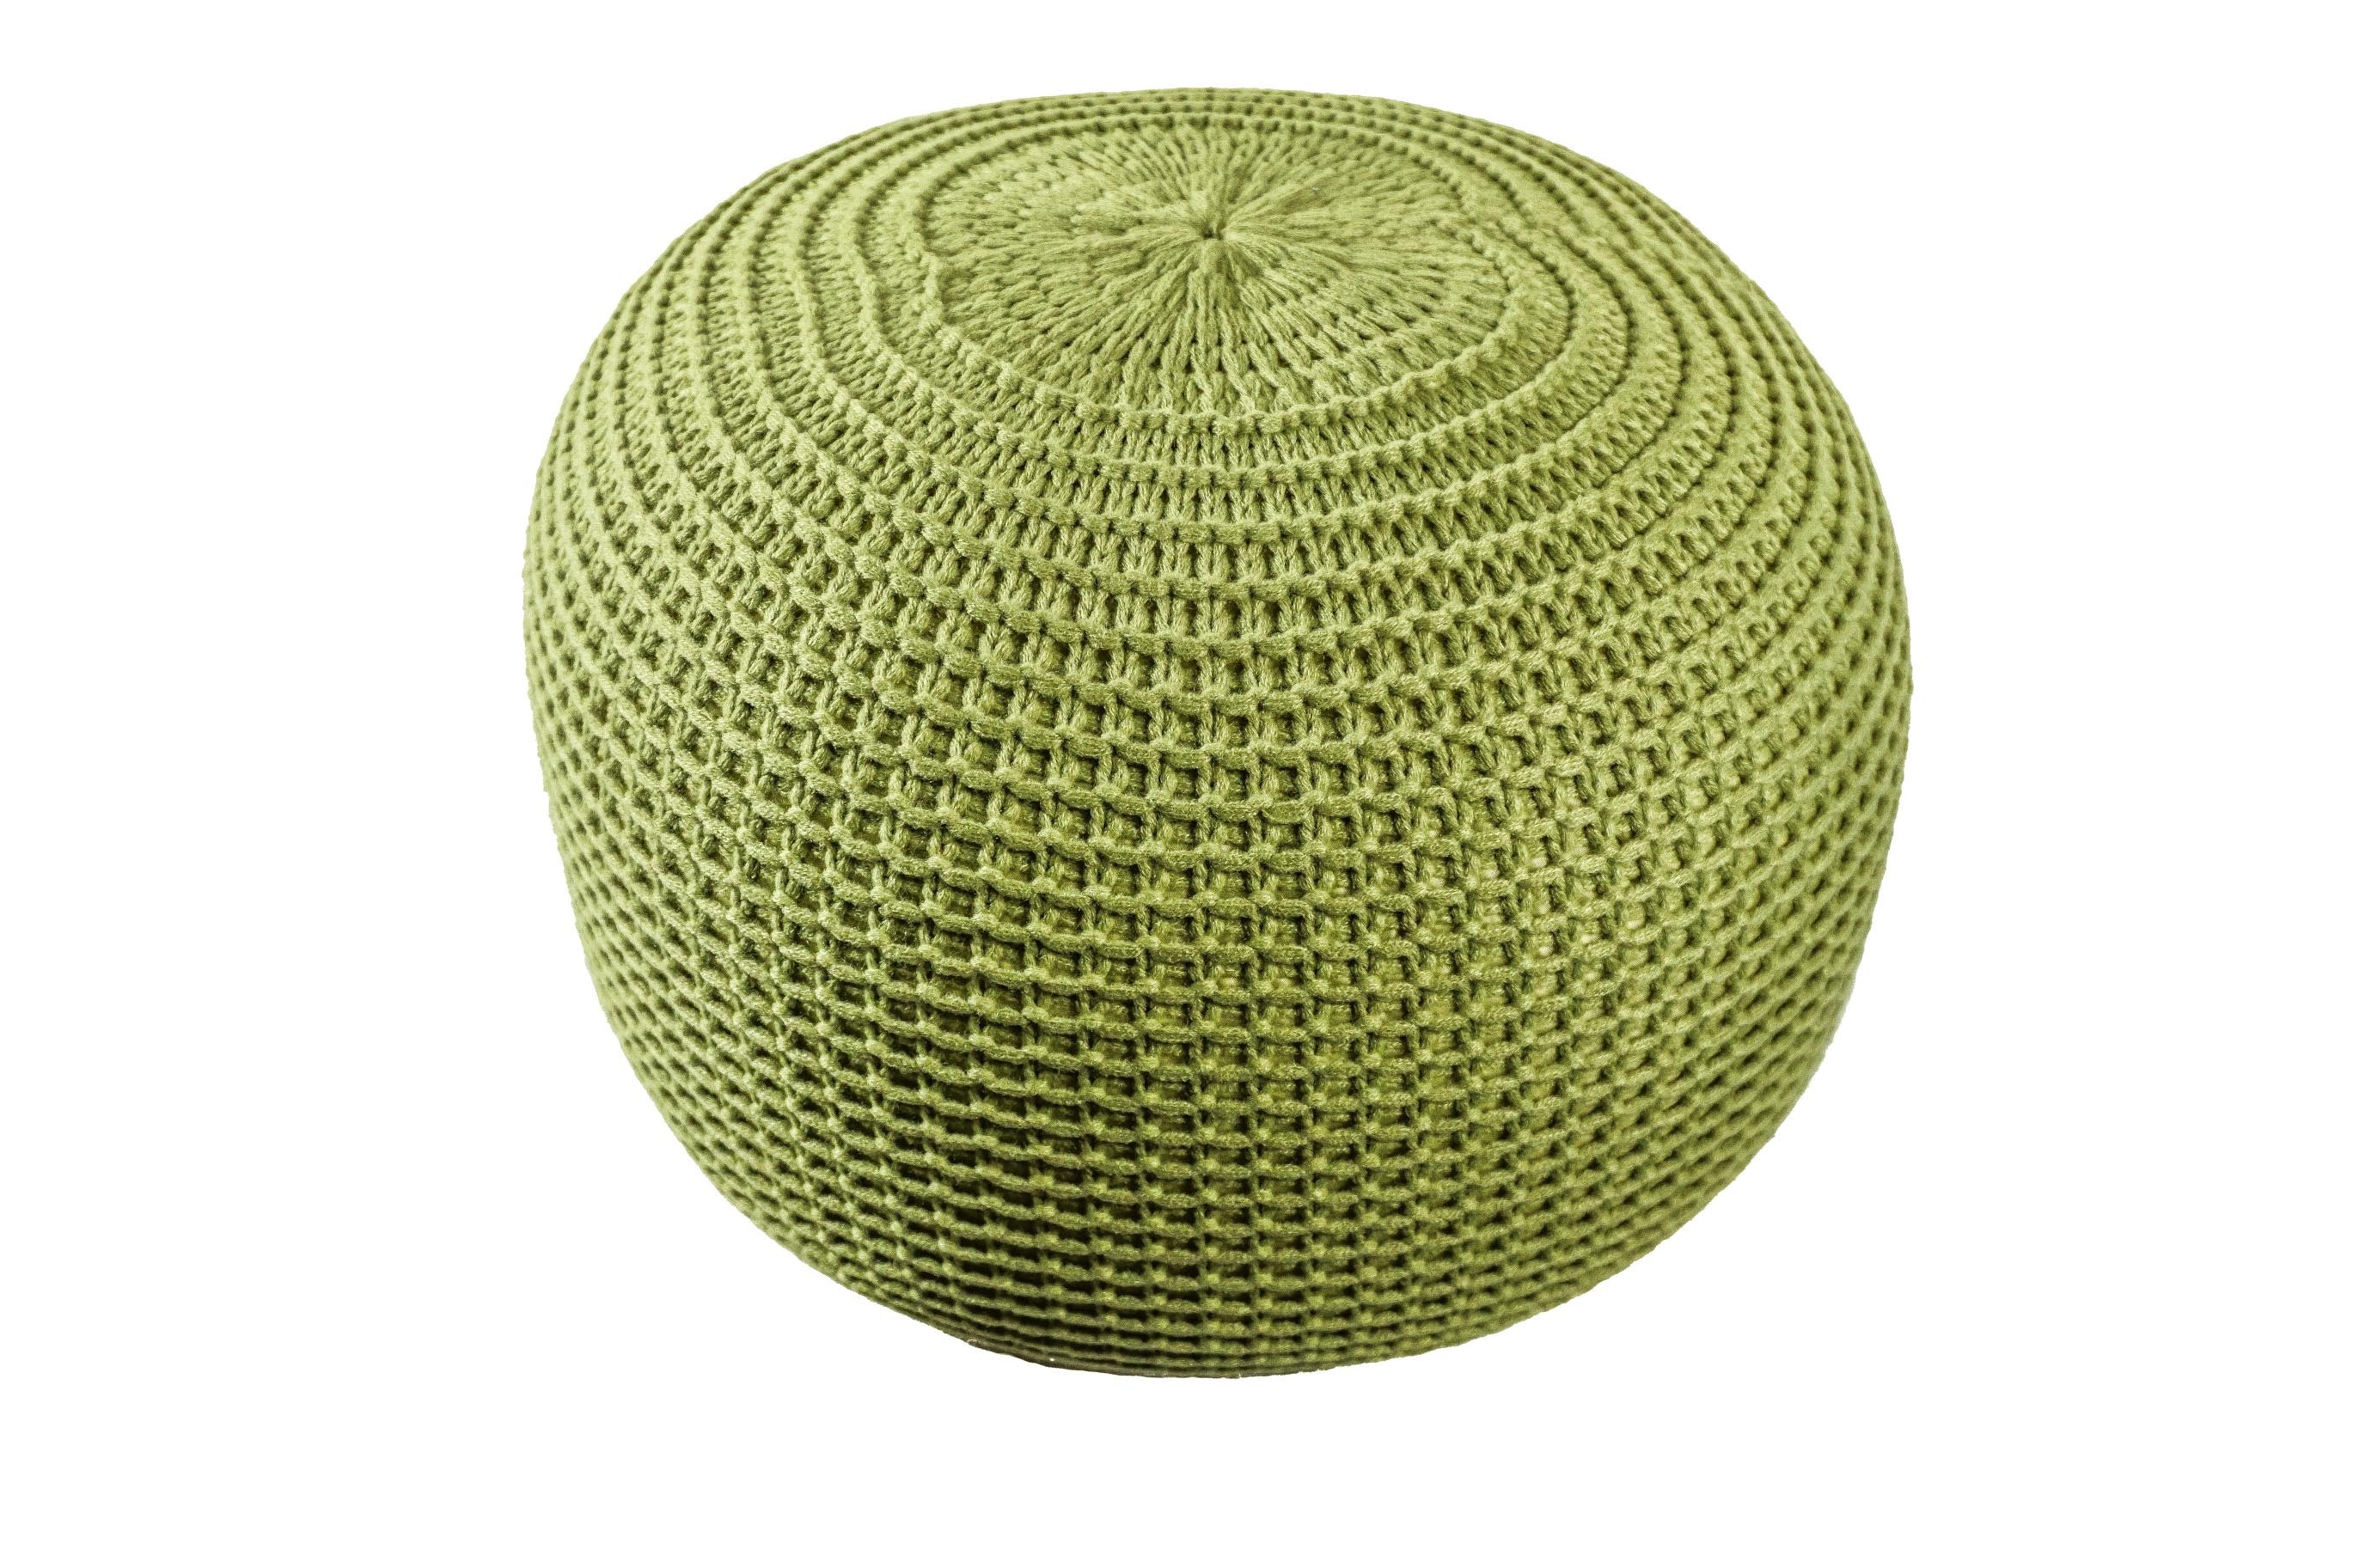 Admirable Homey Knitted Pouf Ottoman Lamtechconsult Wood Chair Design Ideas Lamtechconsultcom